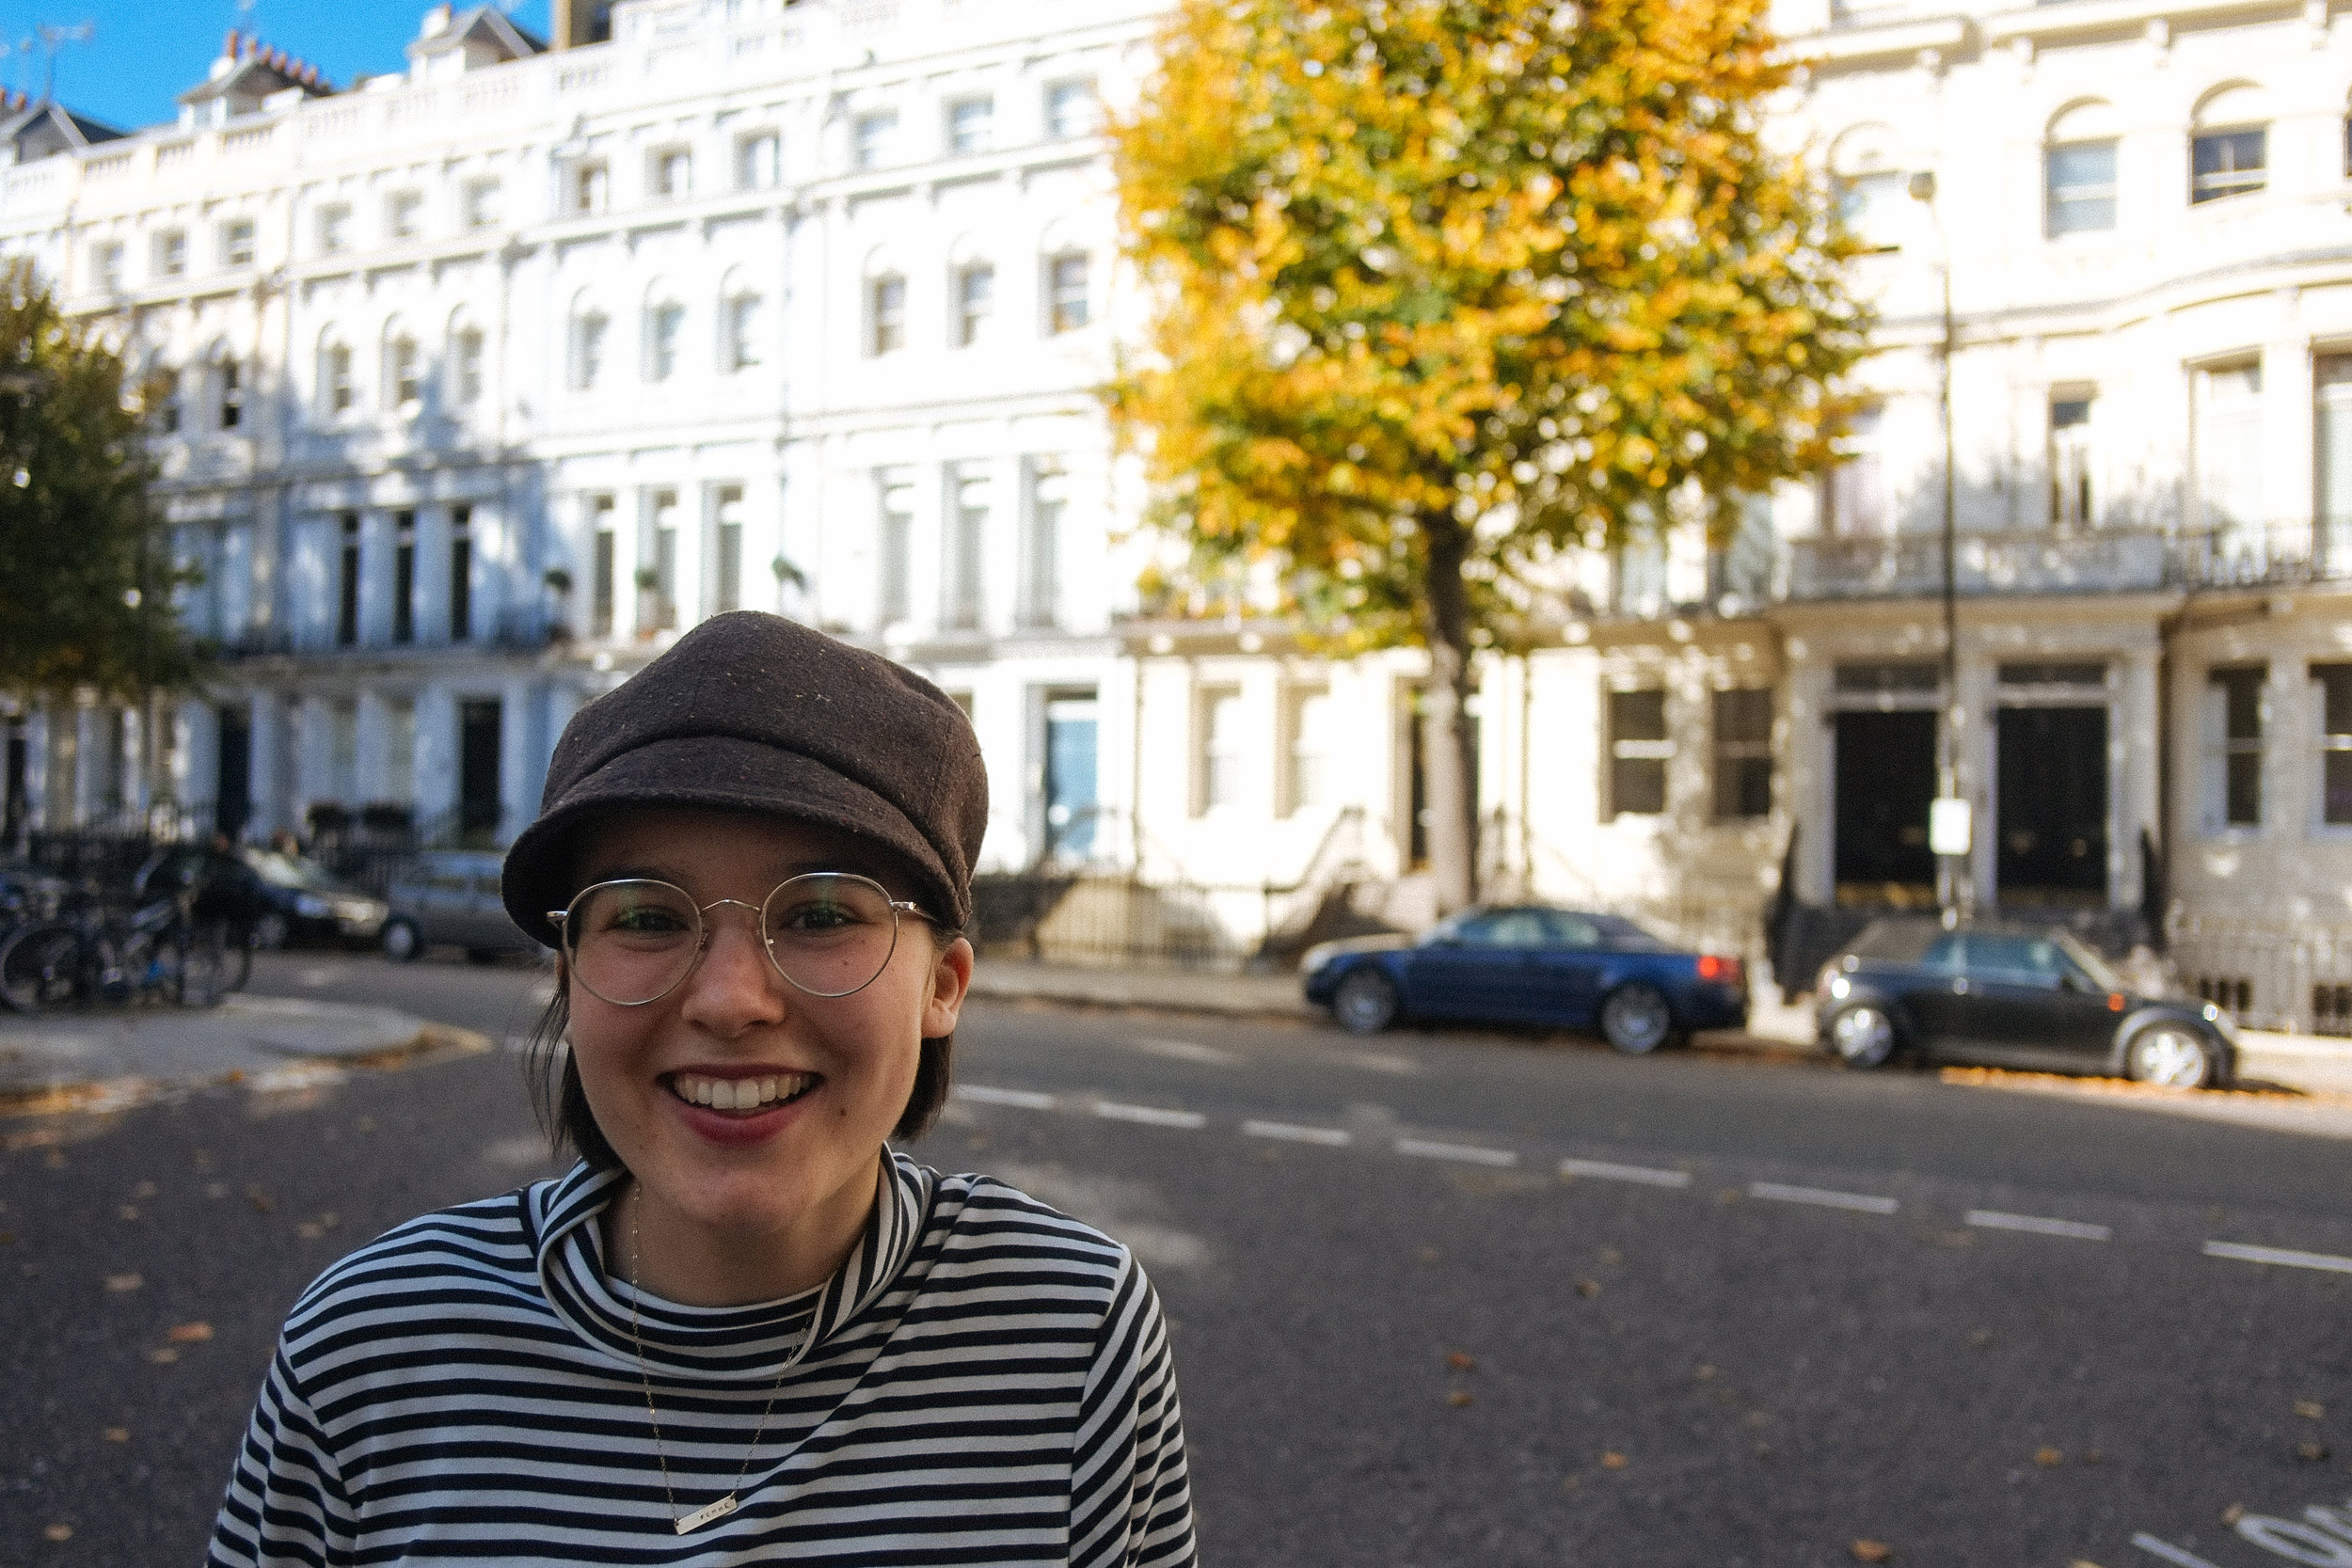 Notting Hill, UK - 2018-10-09: I stumbled off the airplane from YVR to LGW after flying (and layover-ing) for 24 hours… luckily I had a tour guide who had already acclimatized to UK time. We strolled through the Notting Hill district after walking along the North Side of Hyde Park.